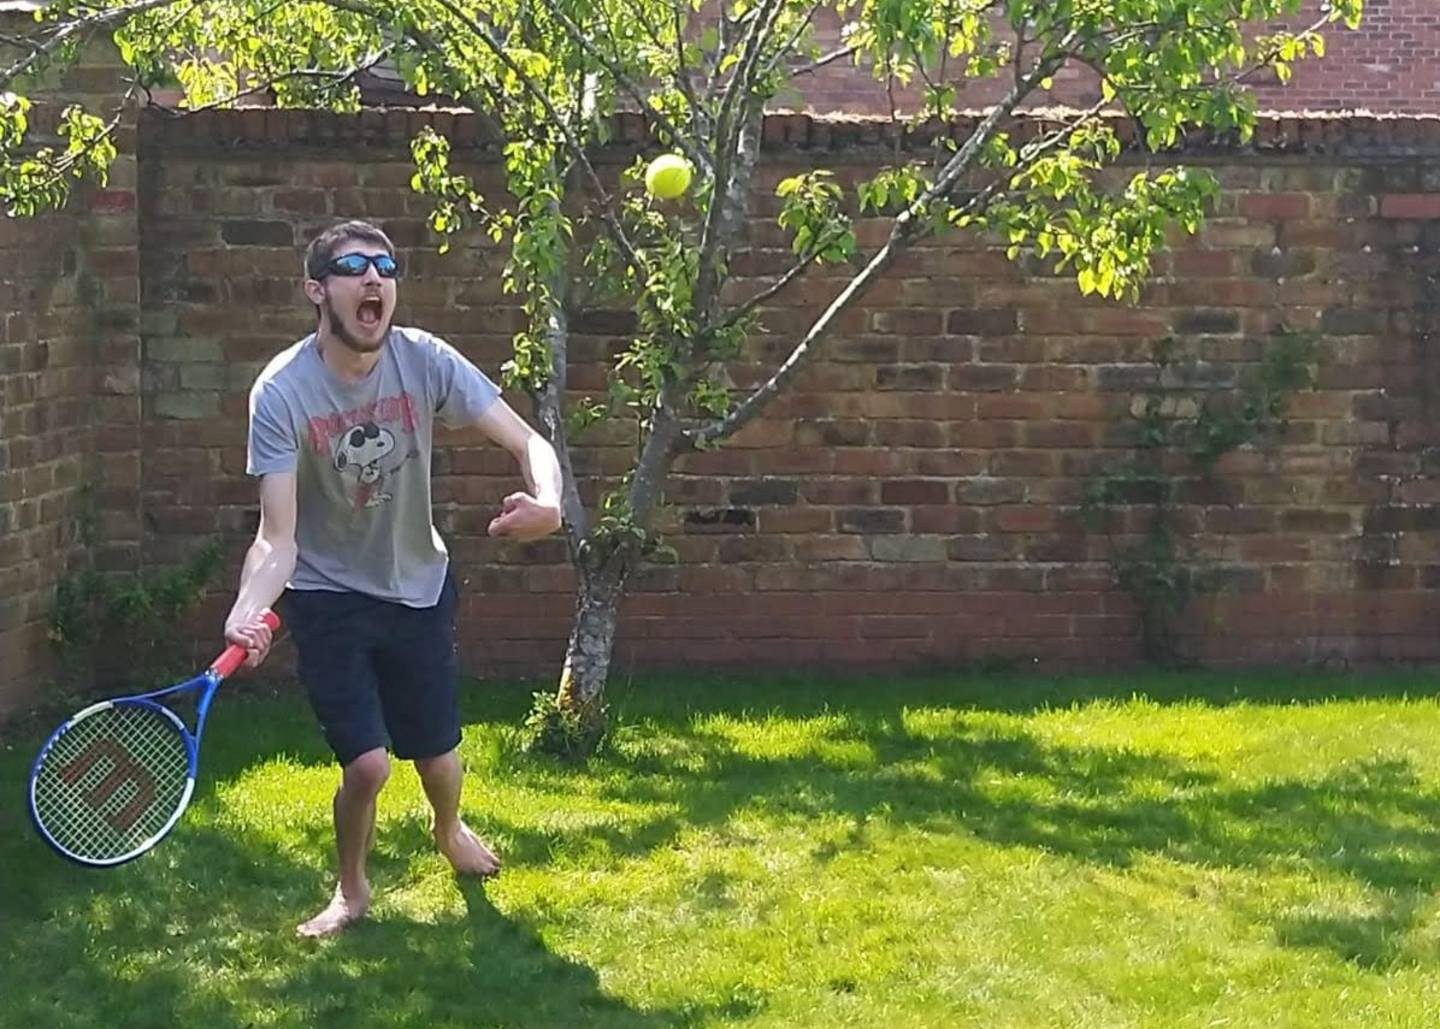 George playing tennis in garden